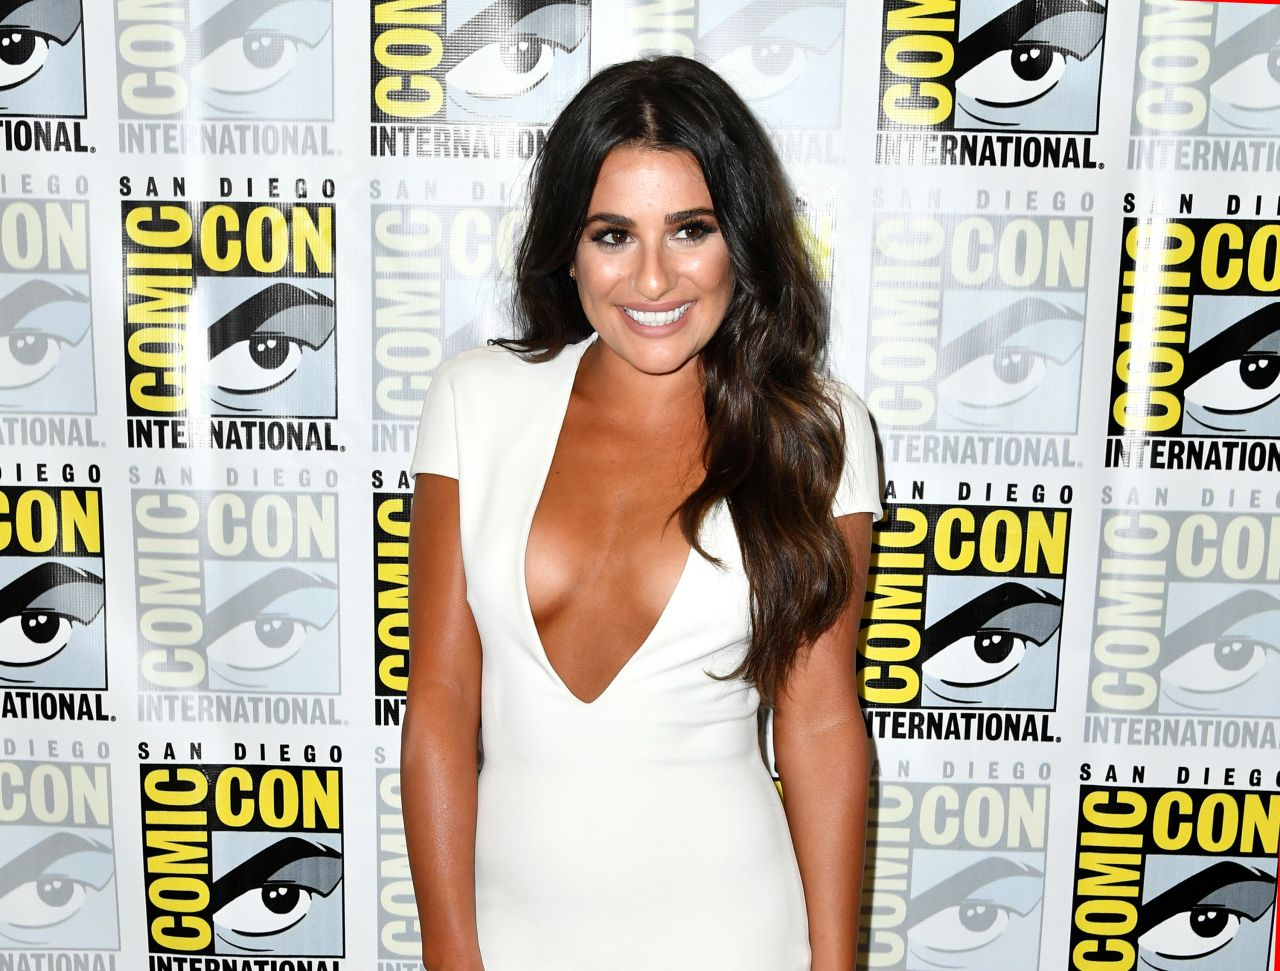 Lea Michele goes for the extreme plunge for Comic-Con 2016